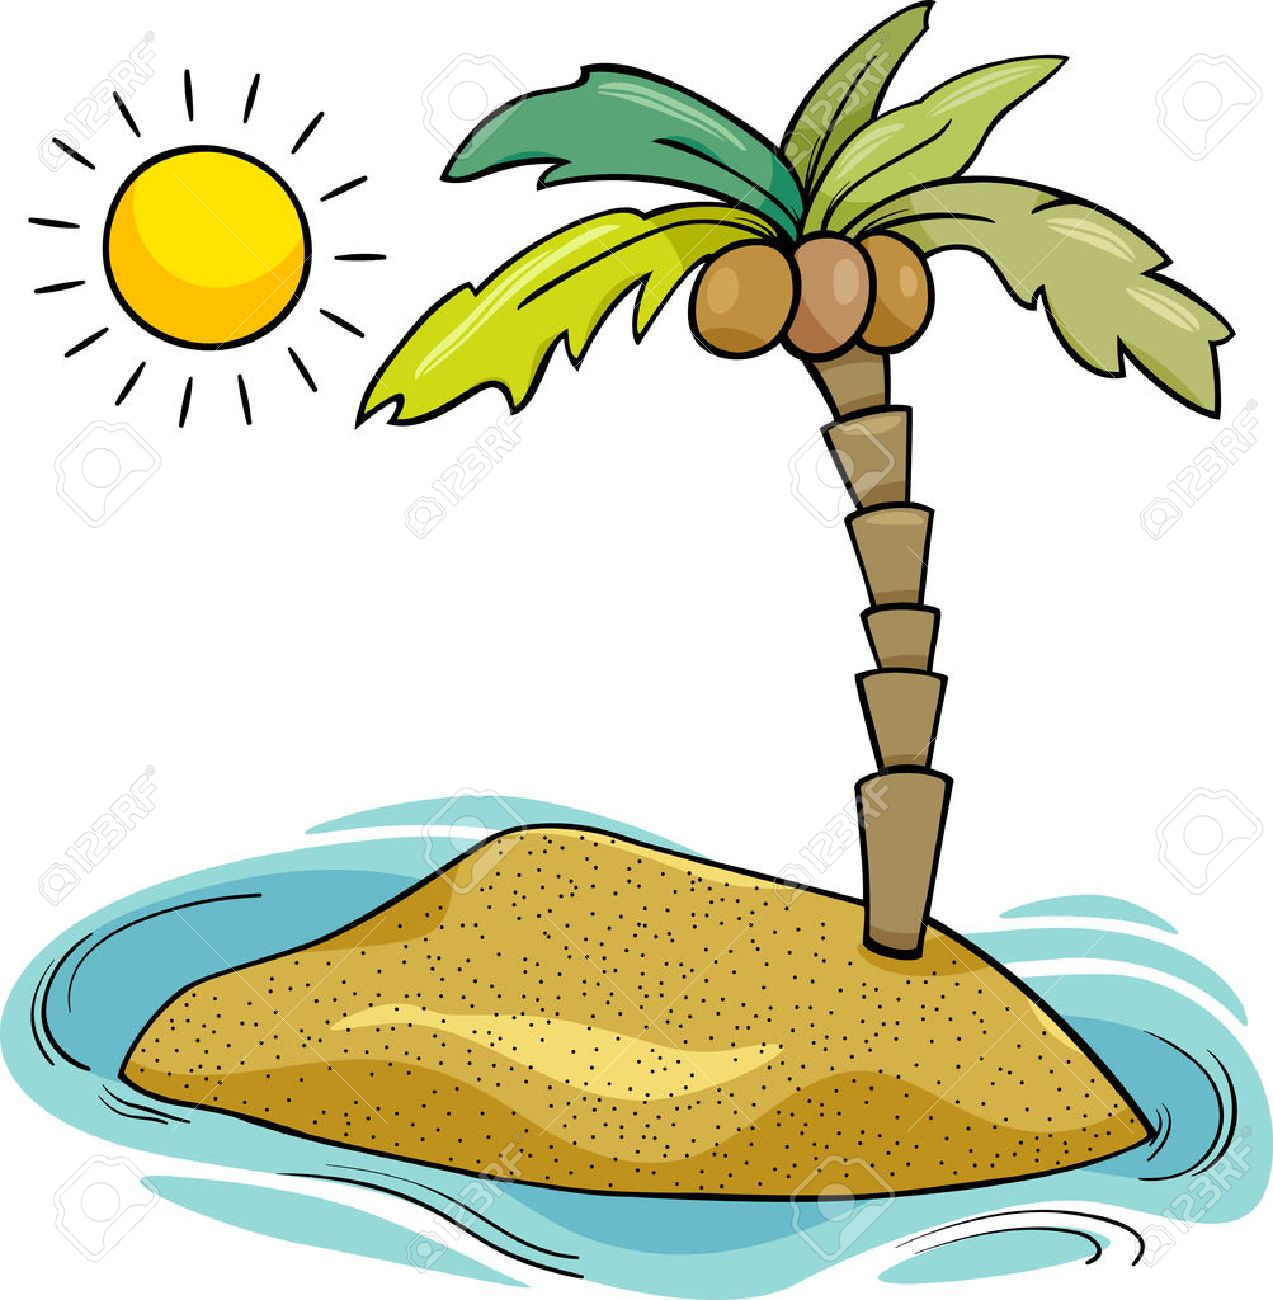 1273x1300 28384161 Cartoon Illustration Of Desert Island With Coconut Palm